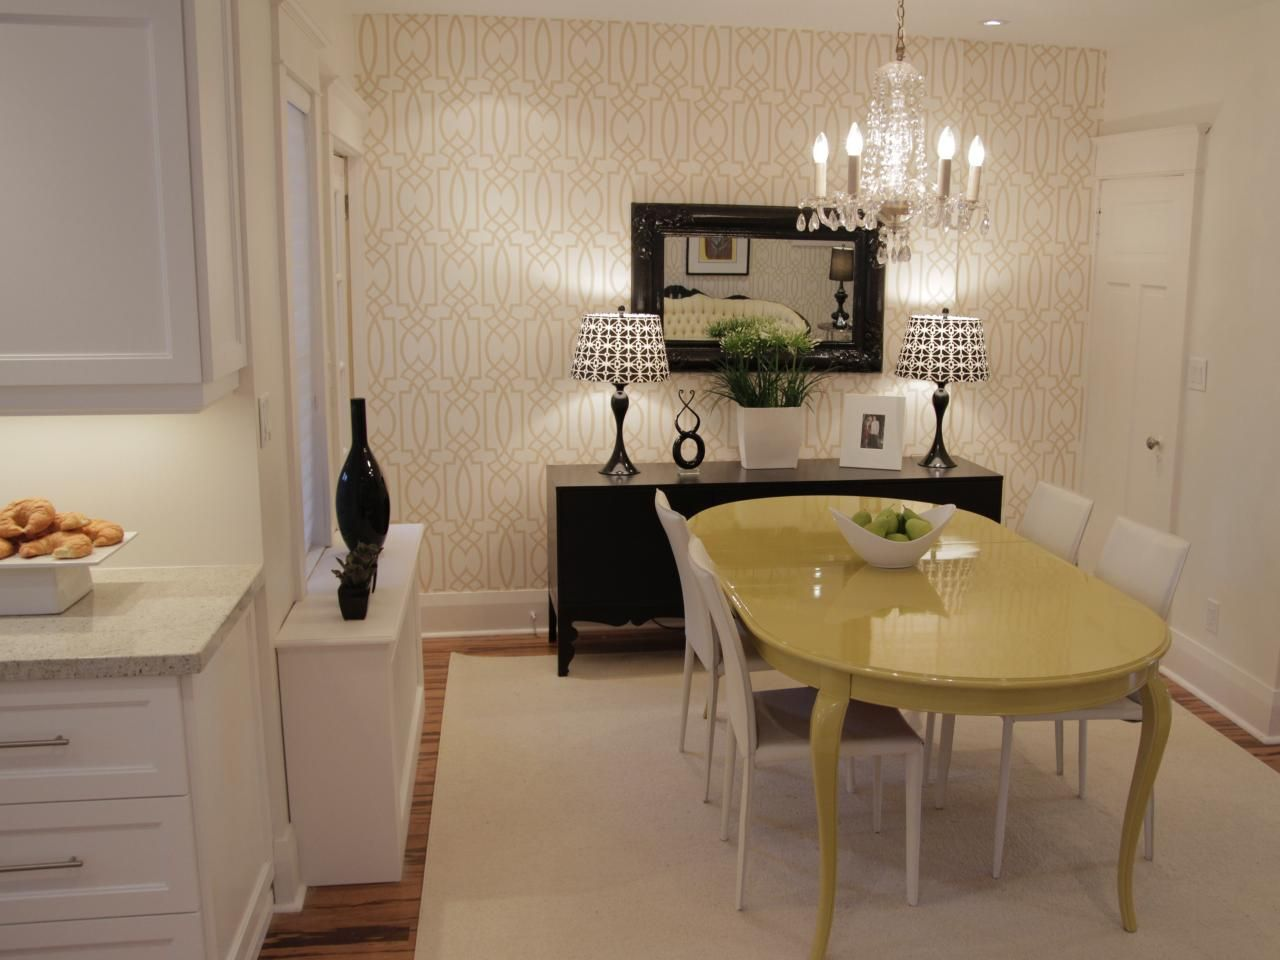 Stylish And Chic Describe This Midcentury Modern Dining Area The Charming Chandelier Highlights Yellow Property Brothers